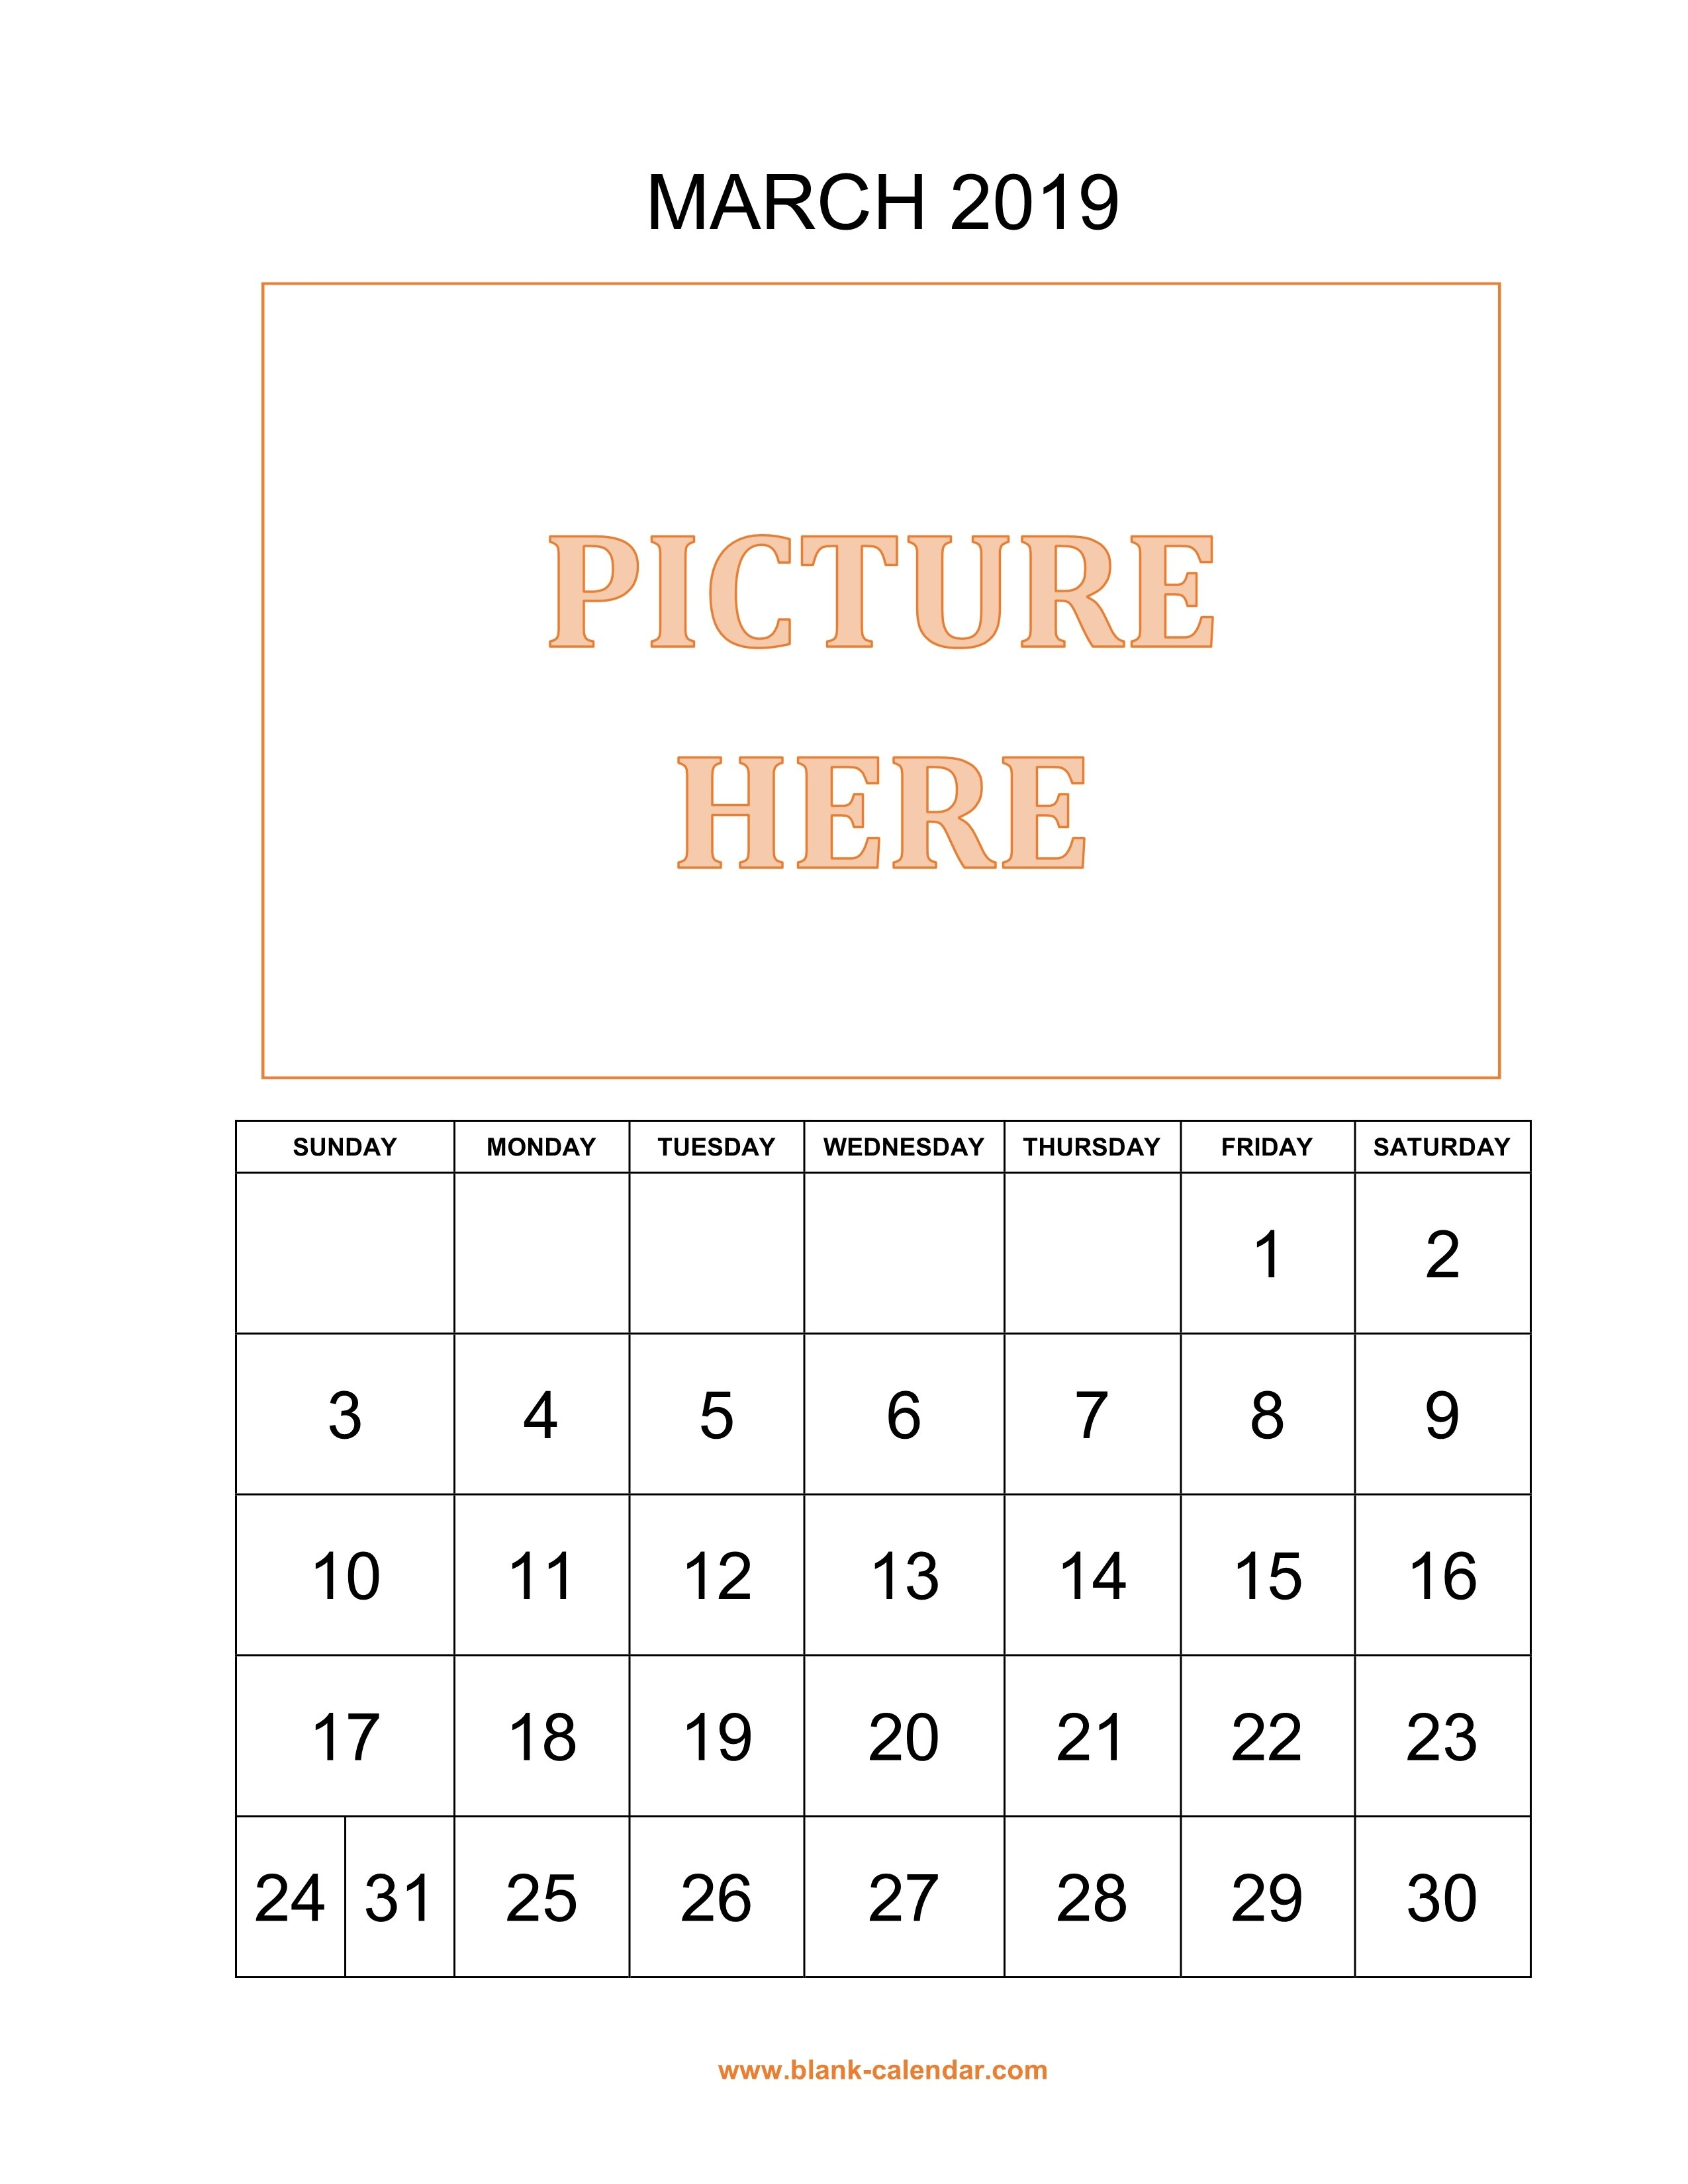 Free Download Printable March 2019 Calendar, Pictures Can Be Placed March 6 2019 Calendar